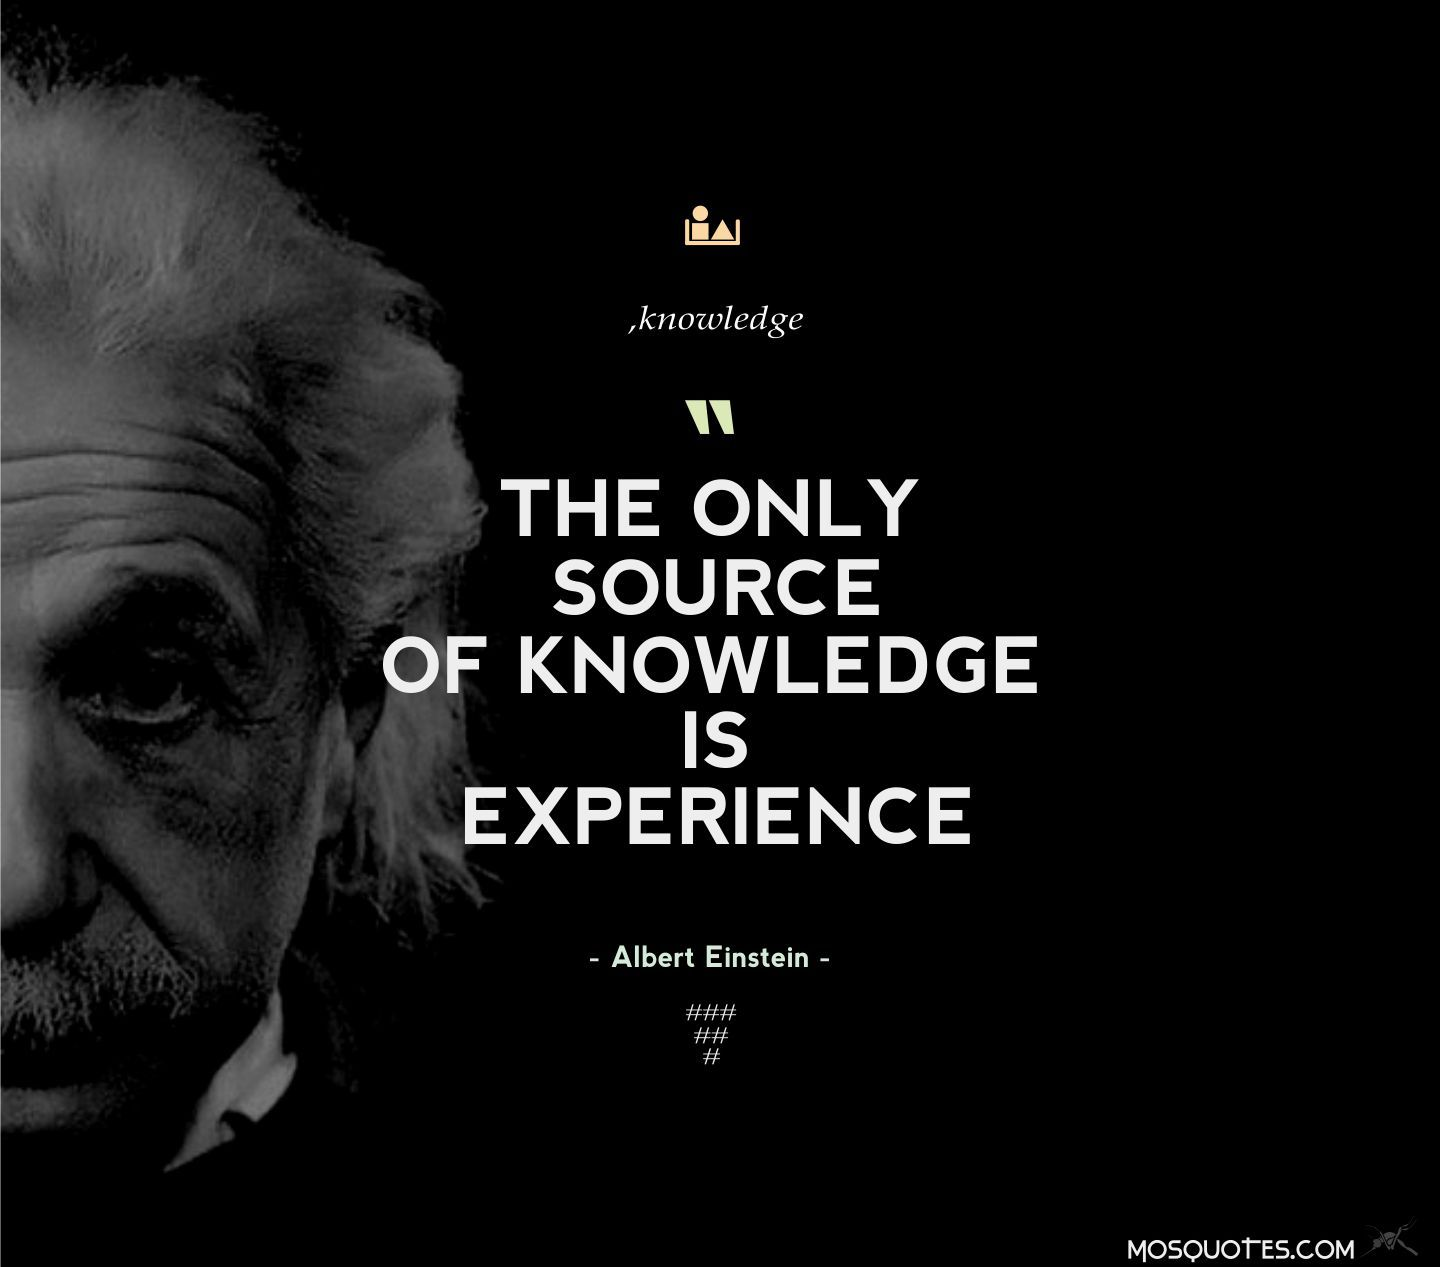 Quotes About Experience: Albert Einstein Inspirational Quotes The Only Source Of